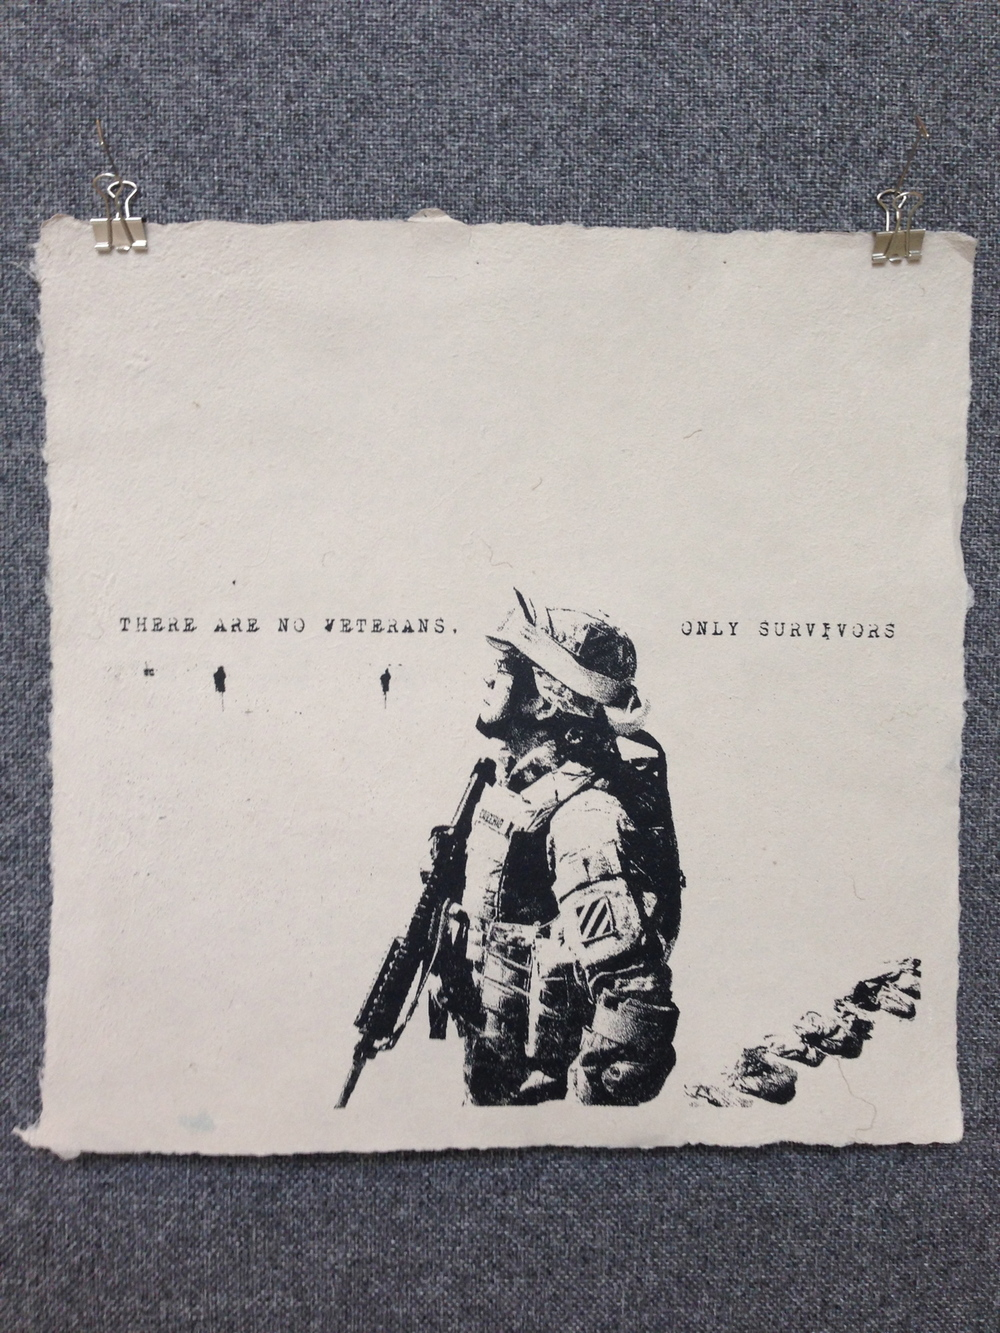 Patrick Cavicchio Army - Iraq _There Are No Veterans_ 2013 Silkscreen on Handmade Paper from military uniforms 15 x 15 Stockton College Workshop IMG_1207.jpg